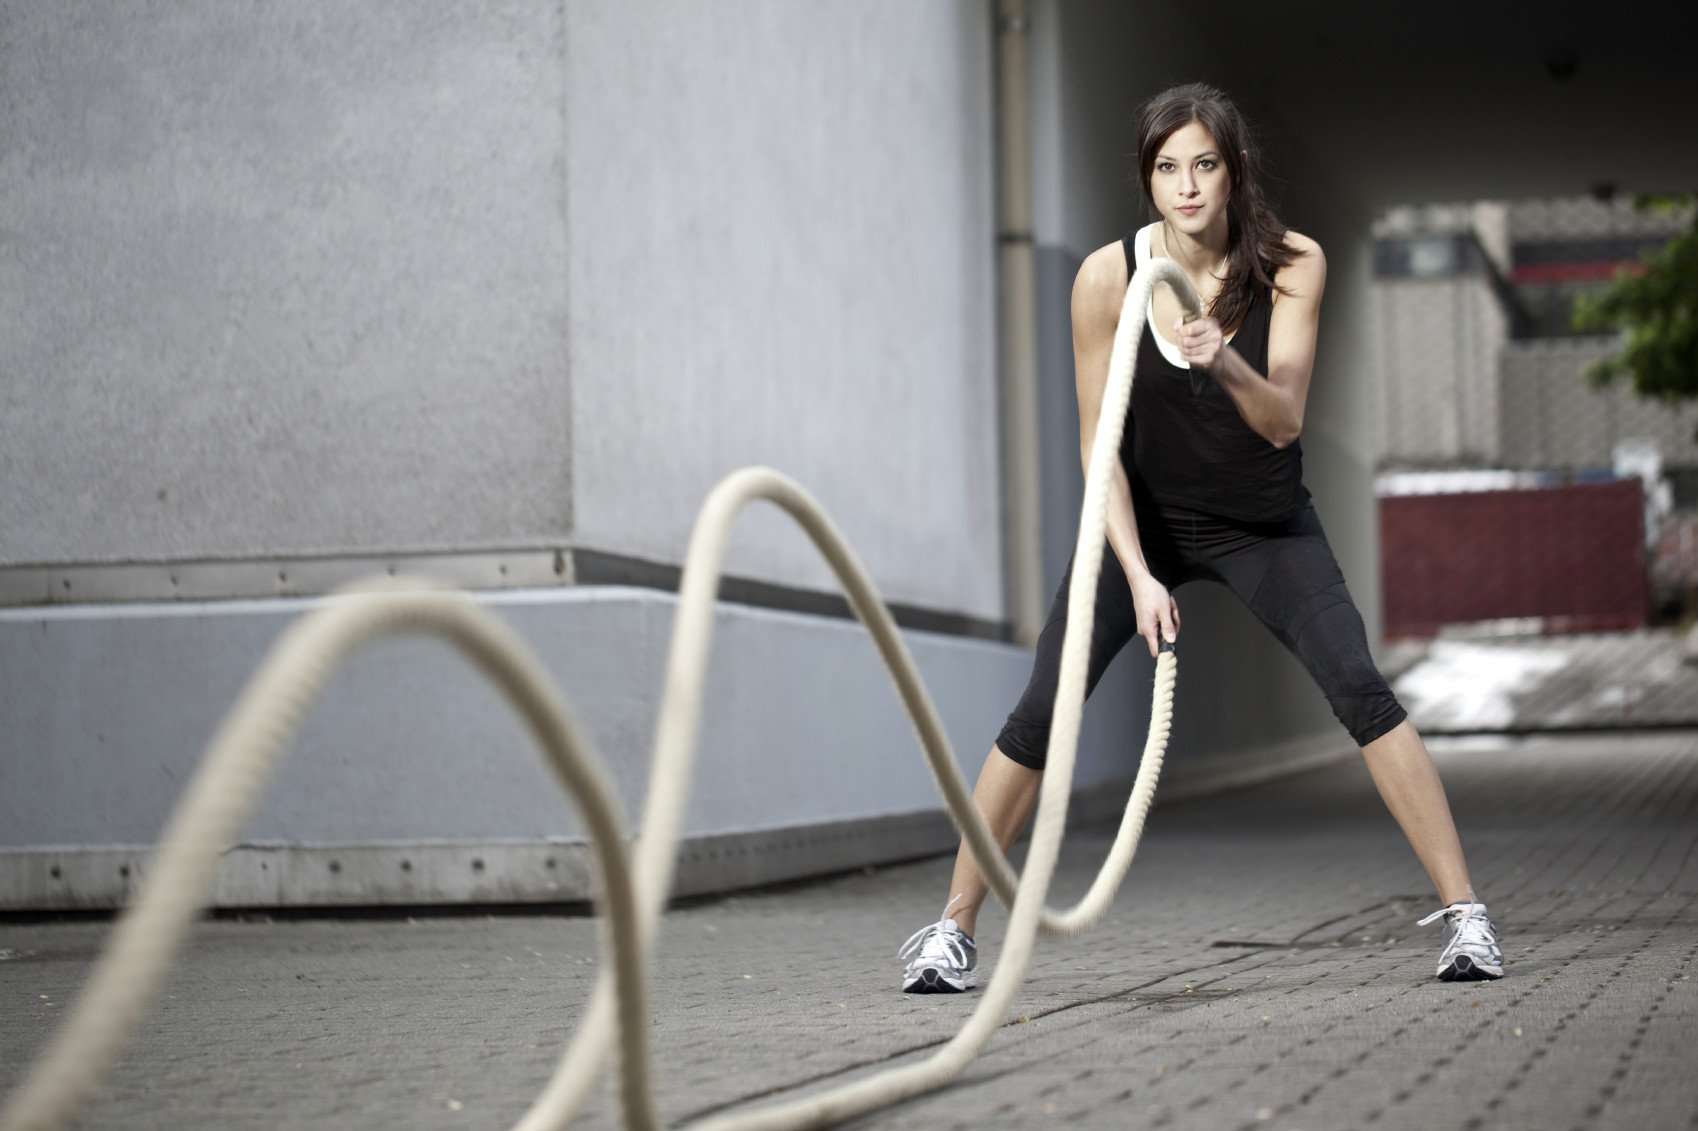 battle rope workout for beginners